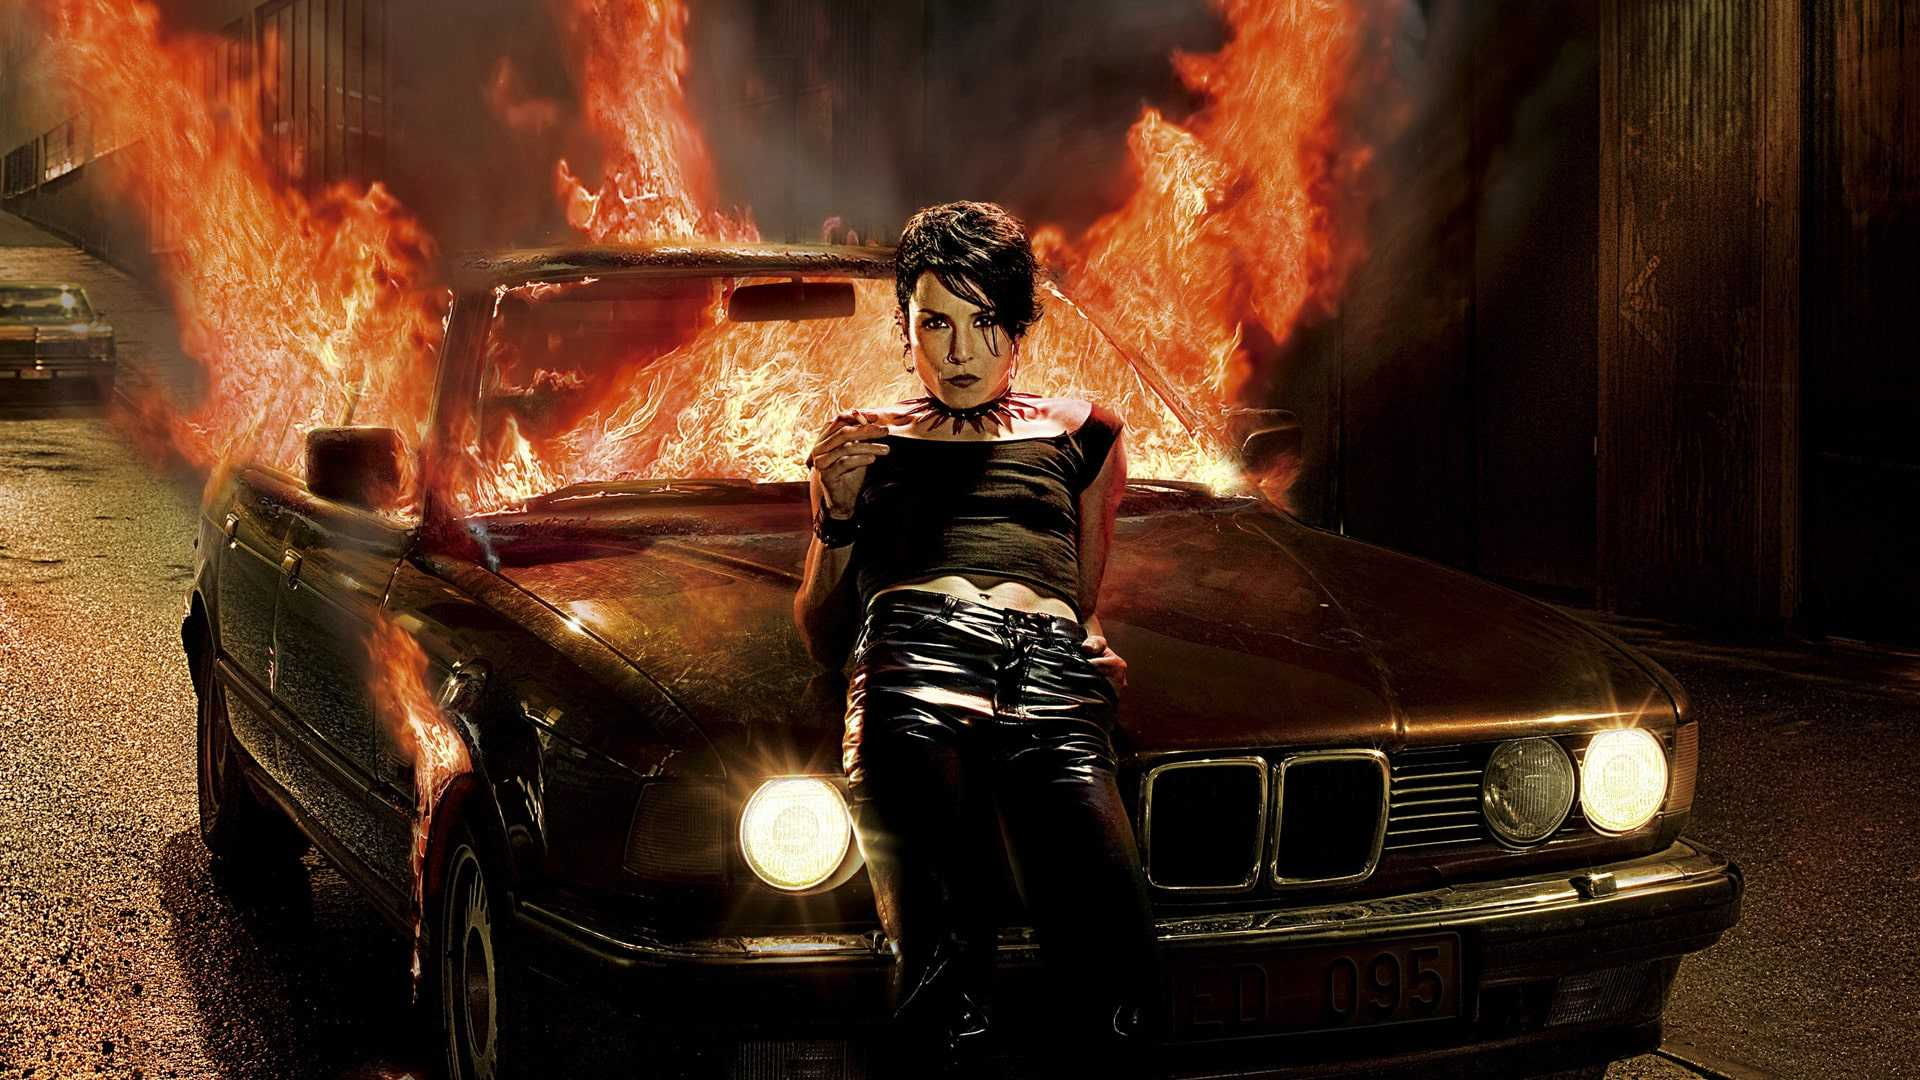 Free download hd car wallpapers images. Fire On Car Wallpaper Kolpaper Awesome Free Hd Wallpapers